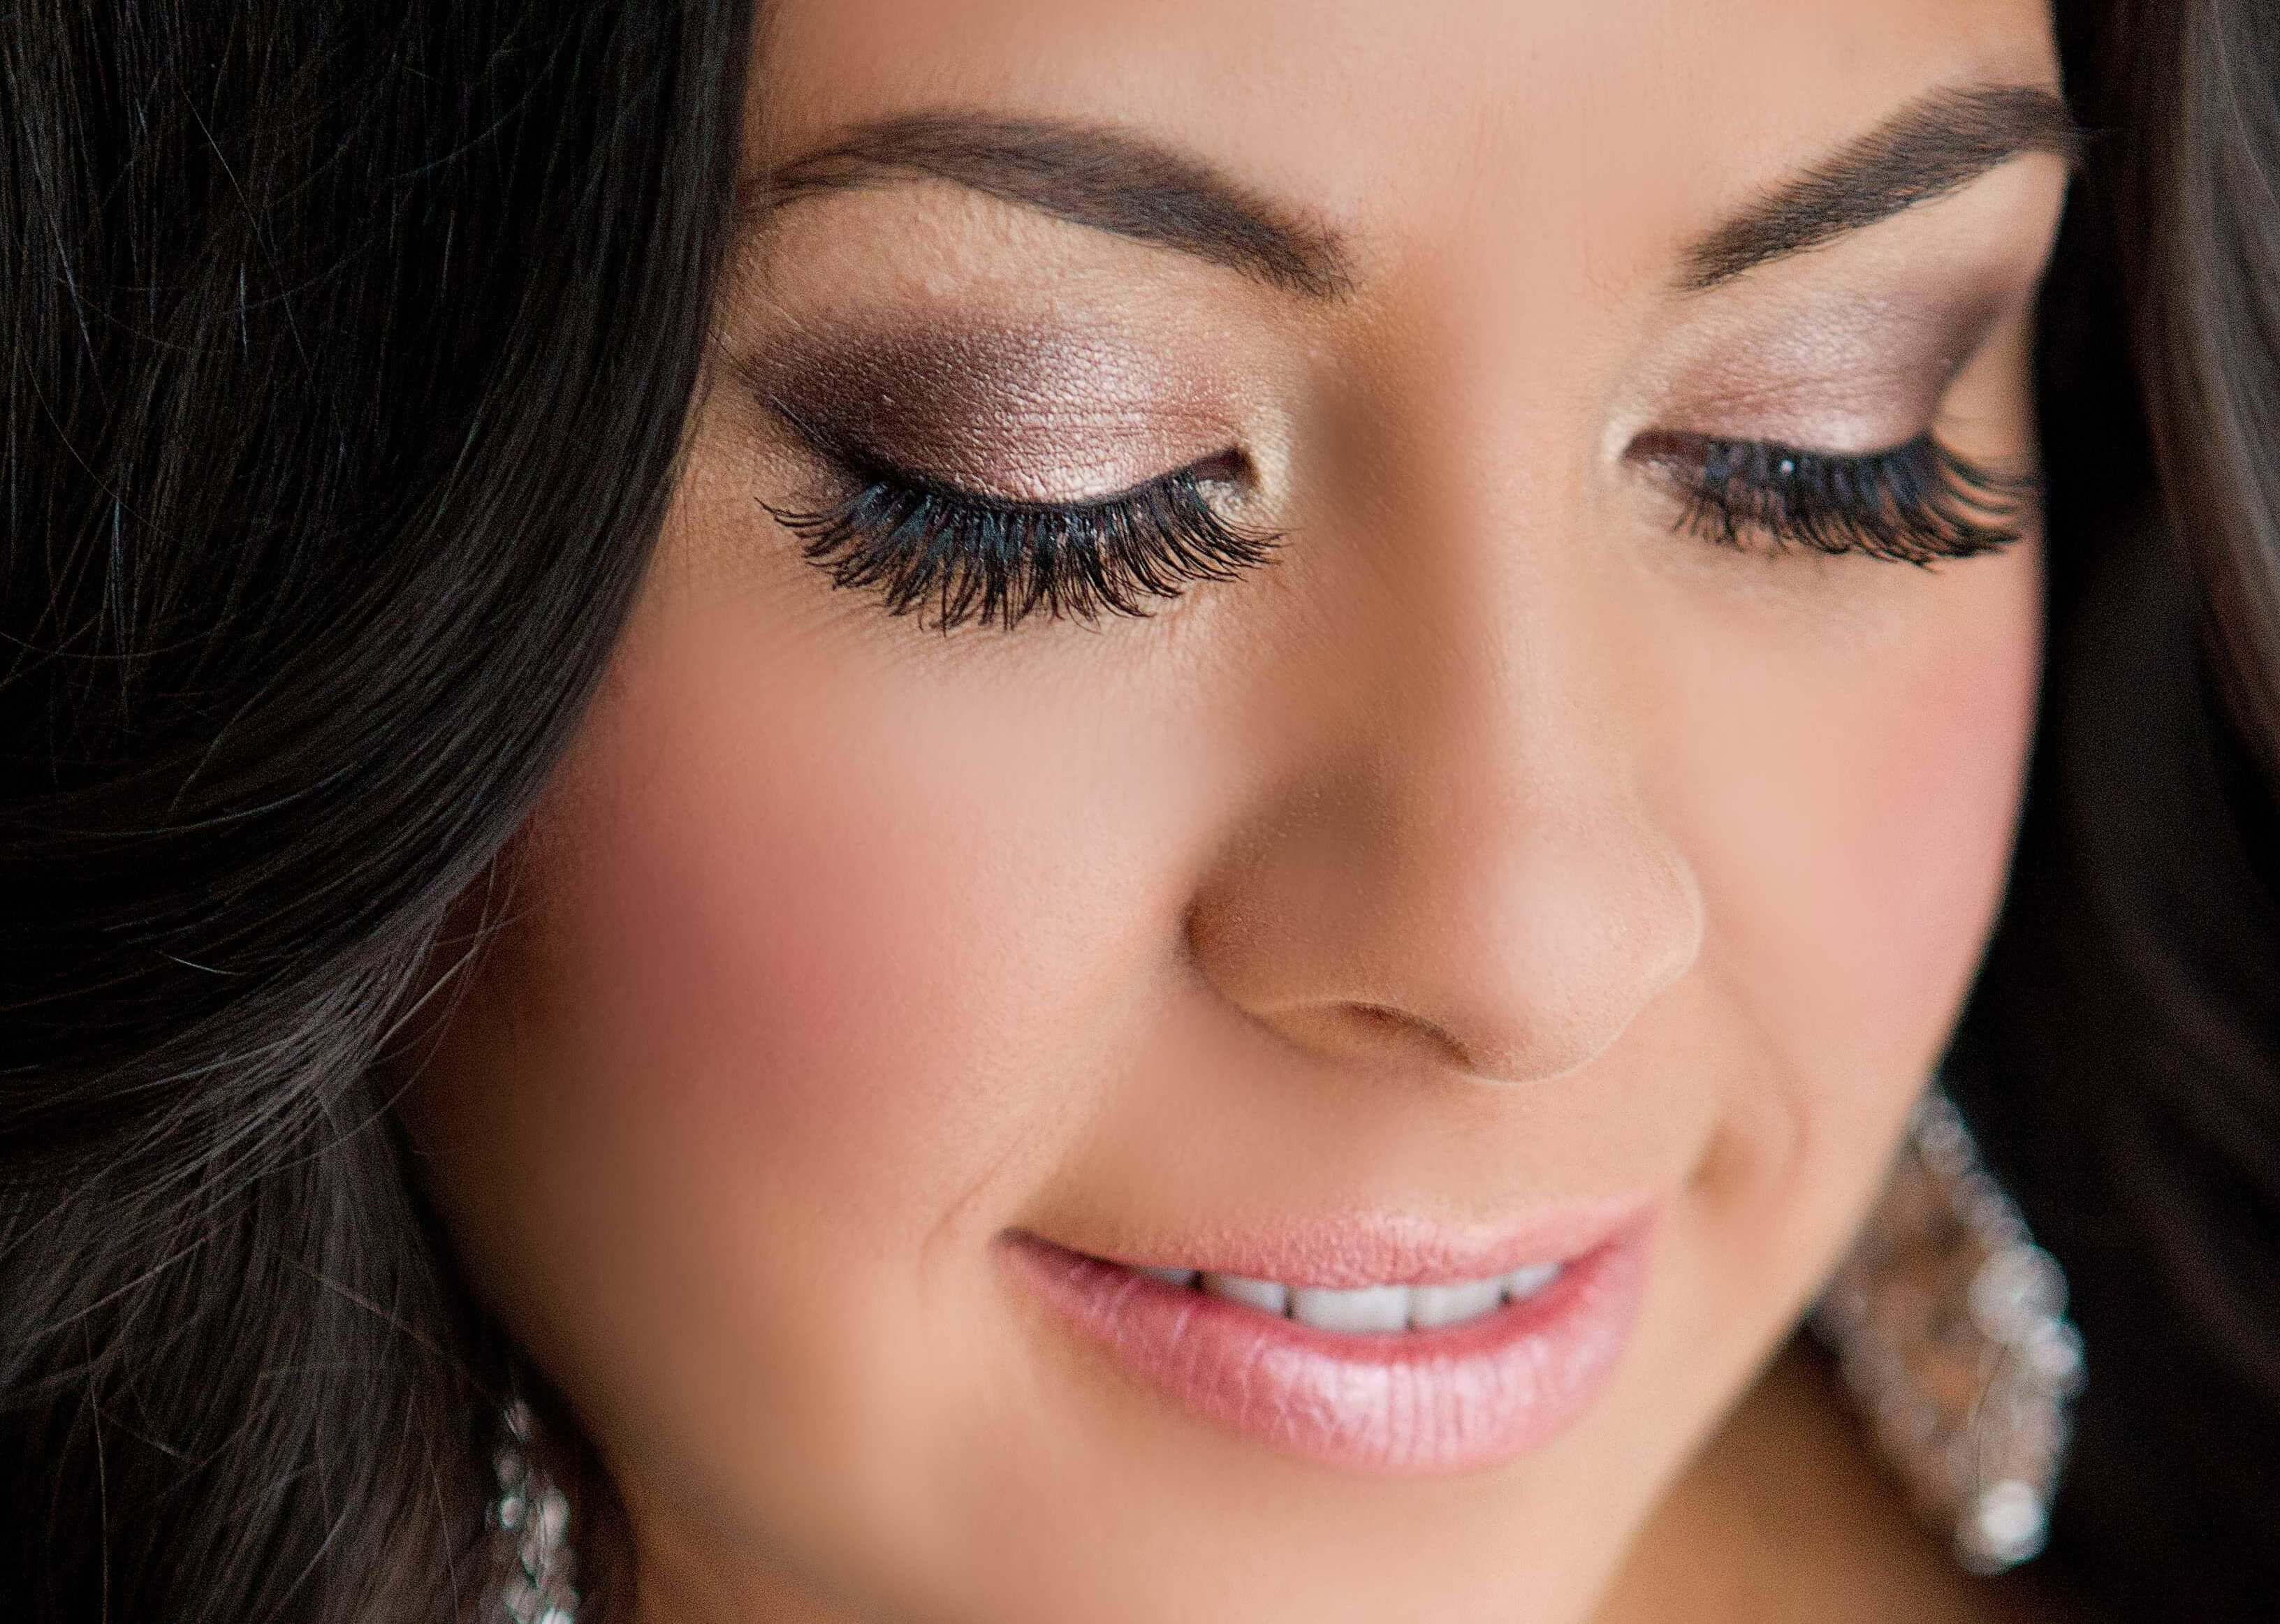 Eye Makeup Tutorial A Guide To Enhance The Beauty Of